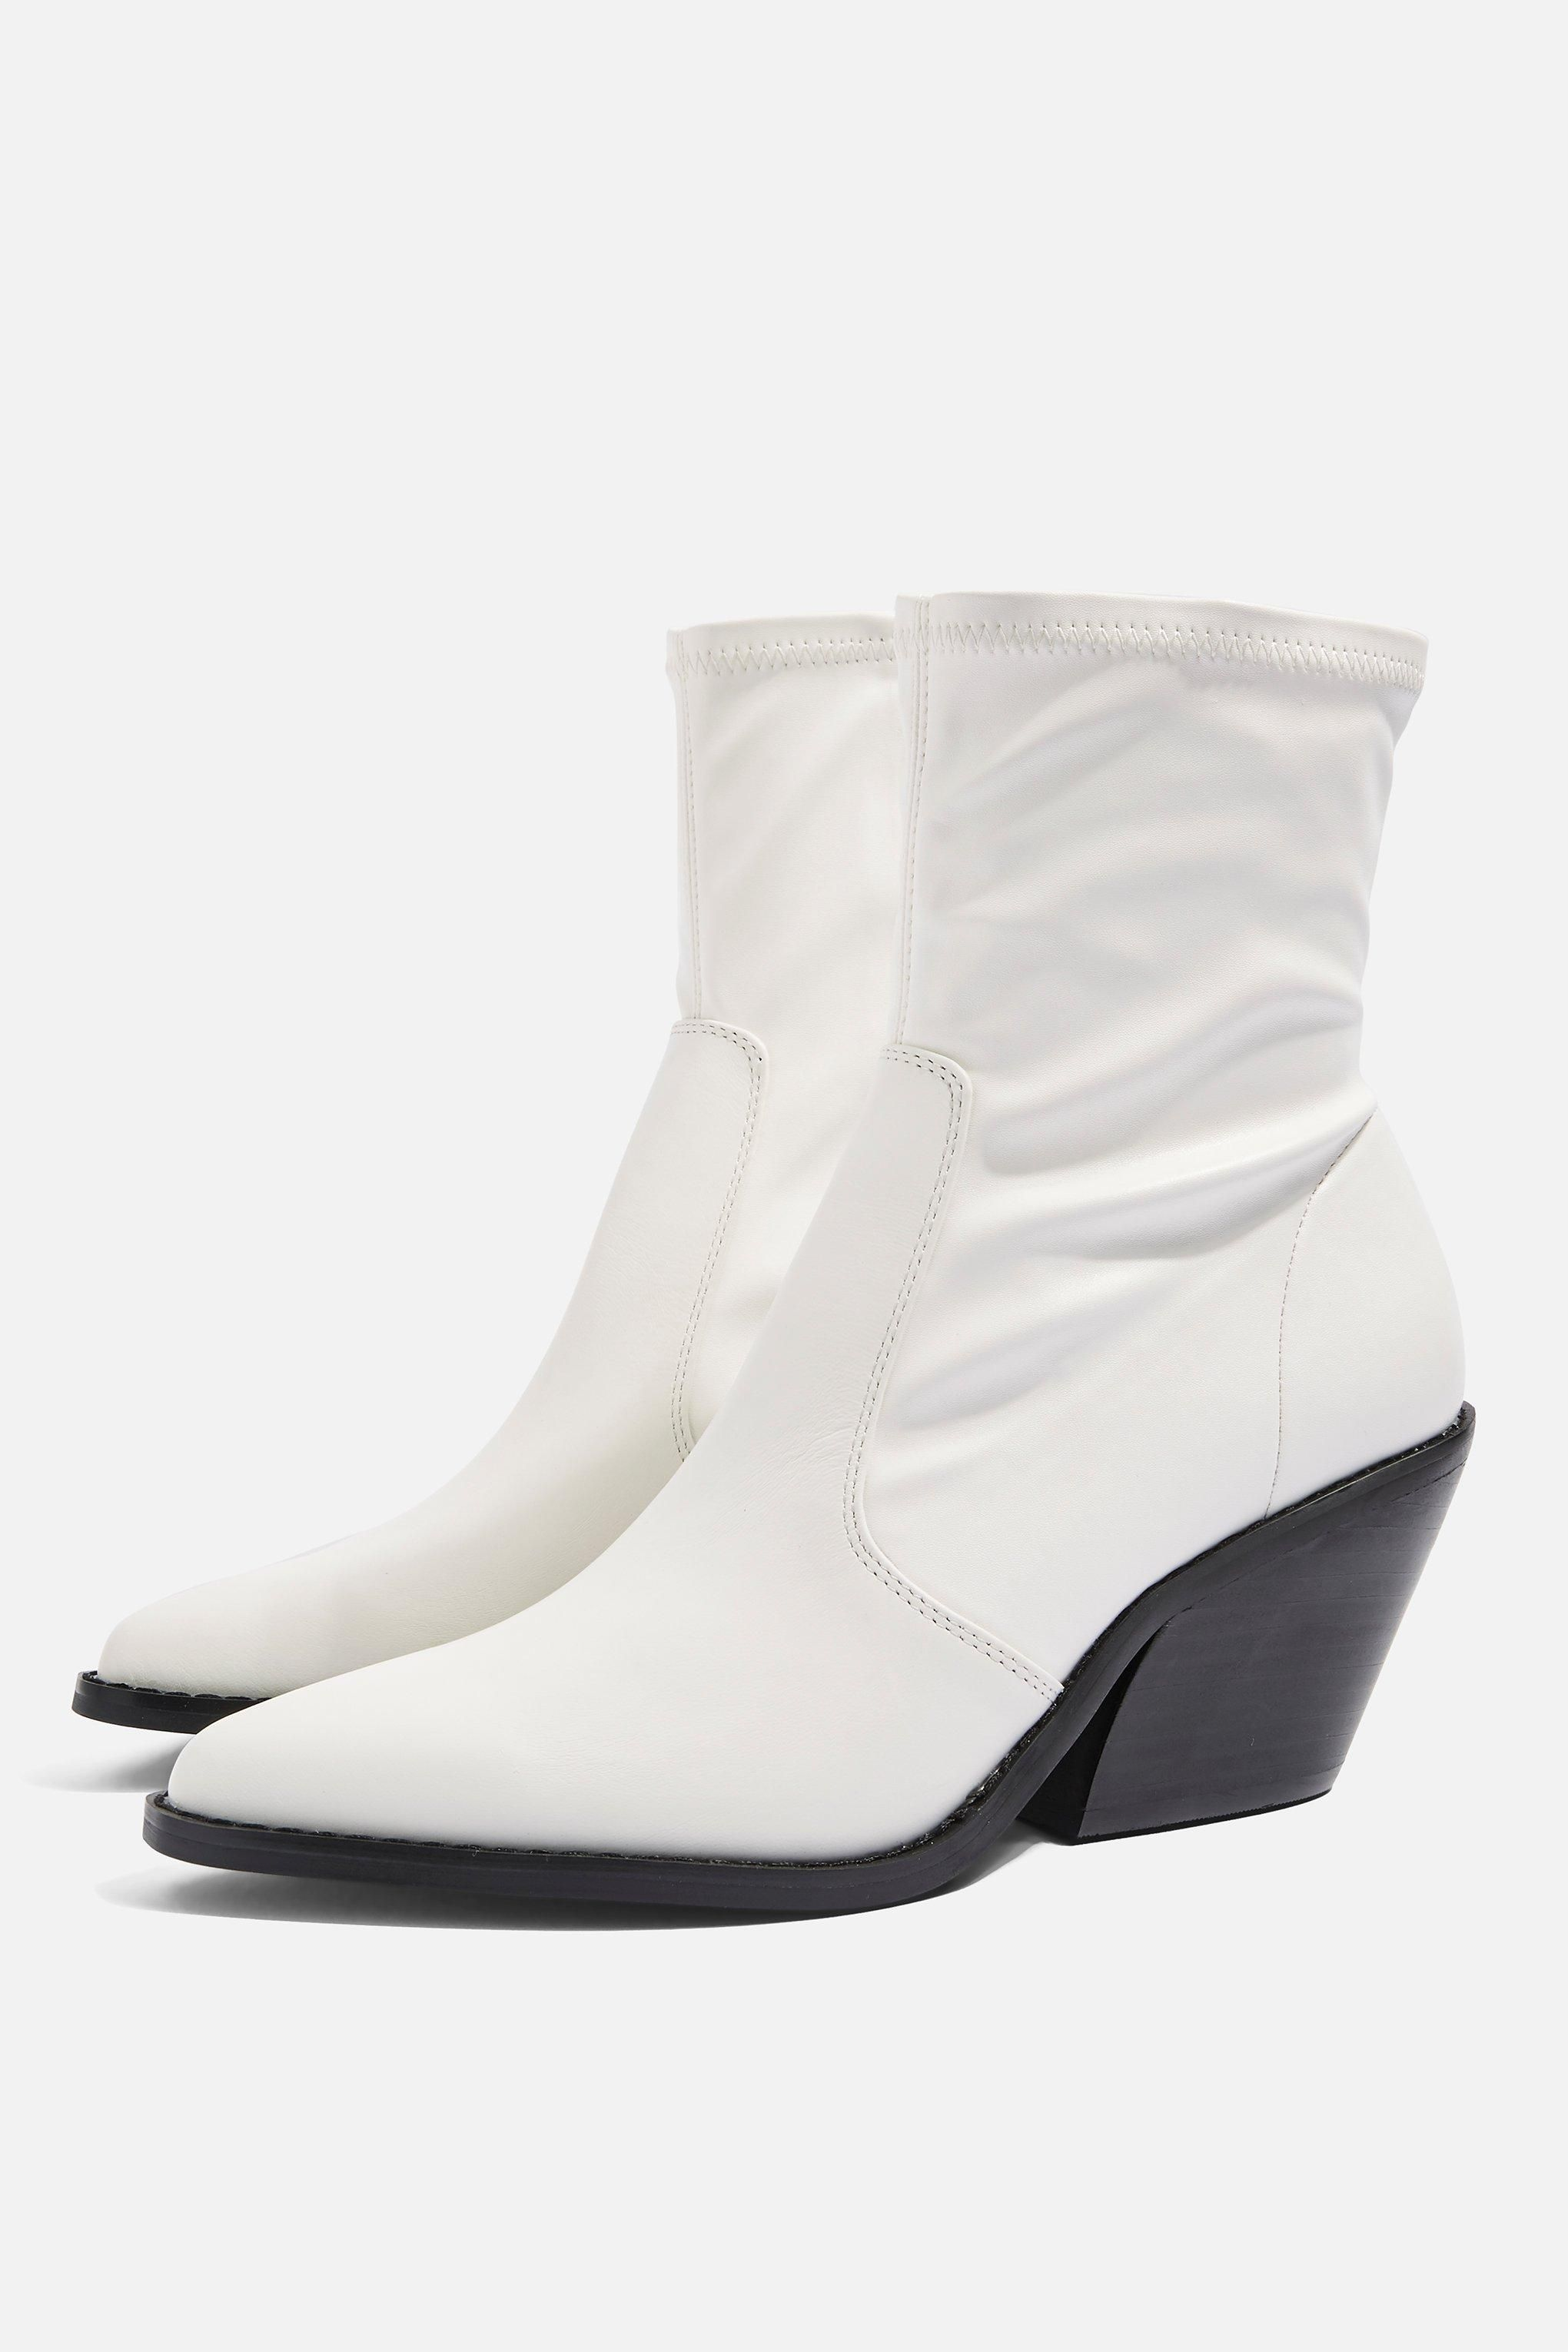 b54103dc9d3 Mission Ankle Boots | Everyday Style in 2019 | Western boots, Mid ...